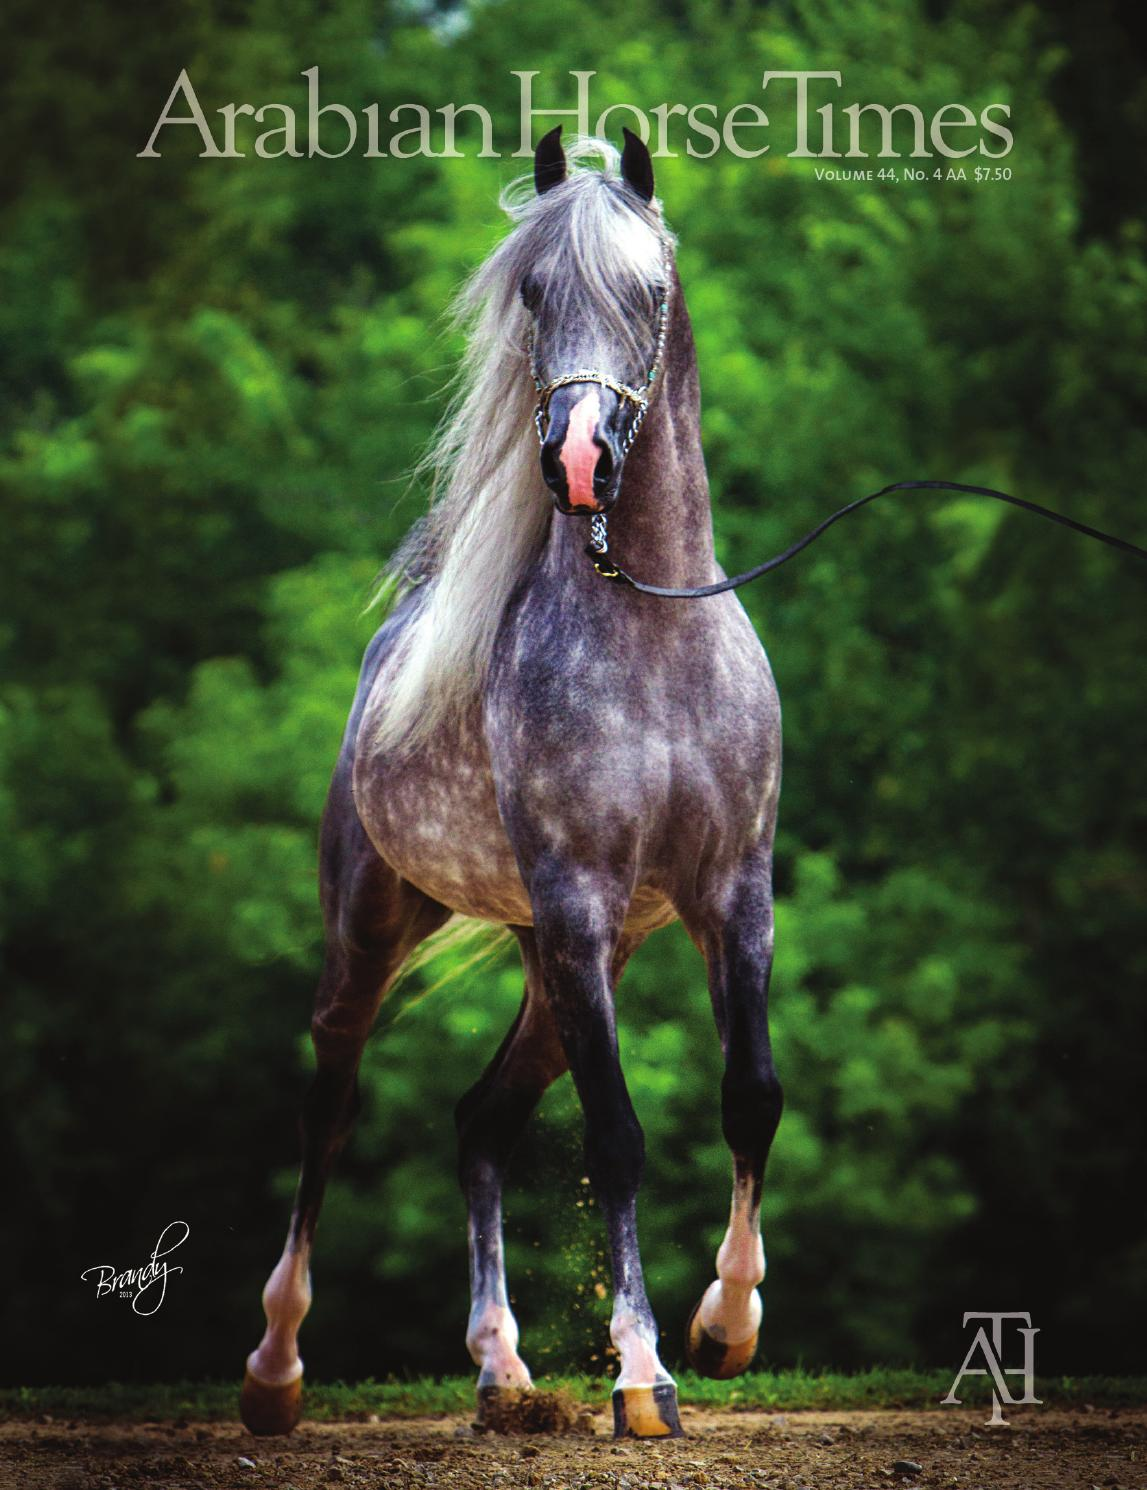 Vol44 No4AA - September 2013 by Arabian Horse Times - issuu